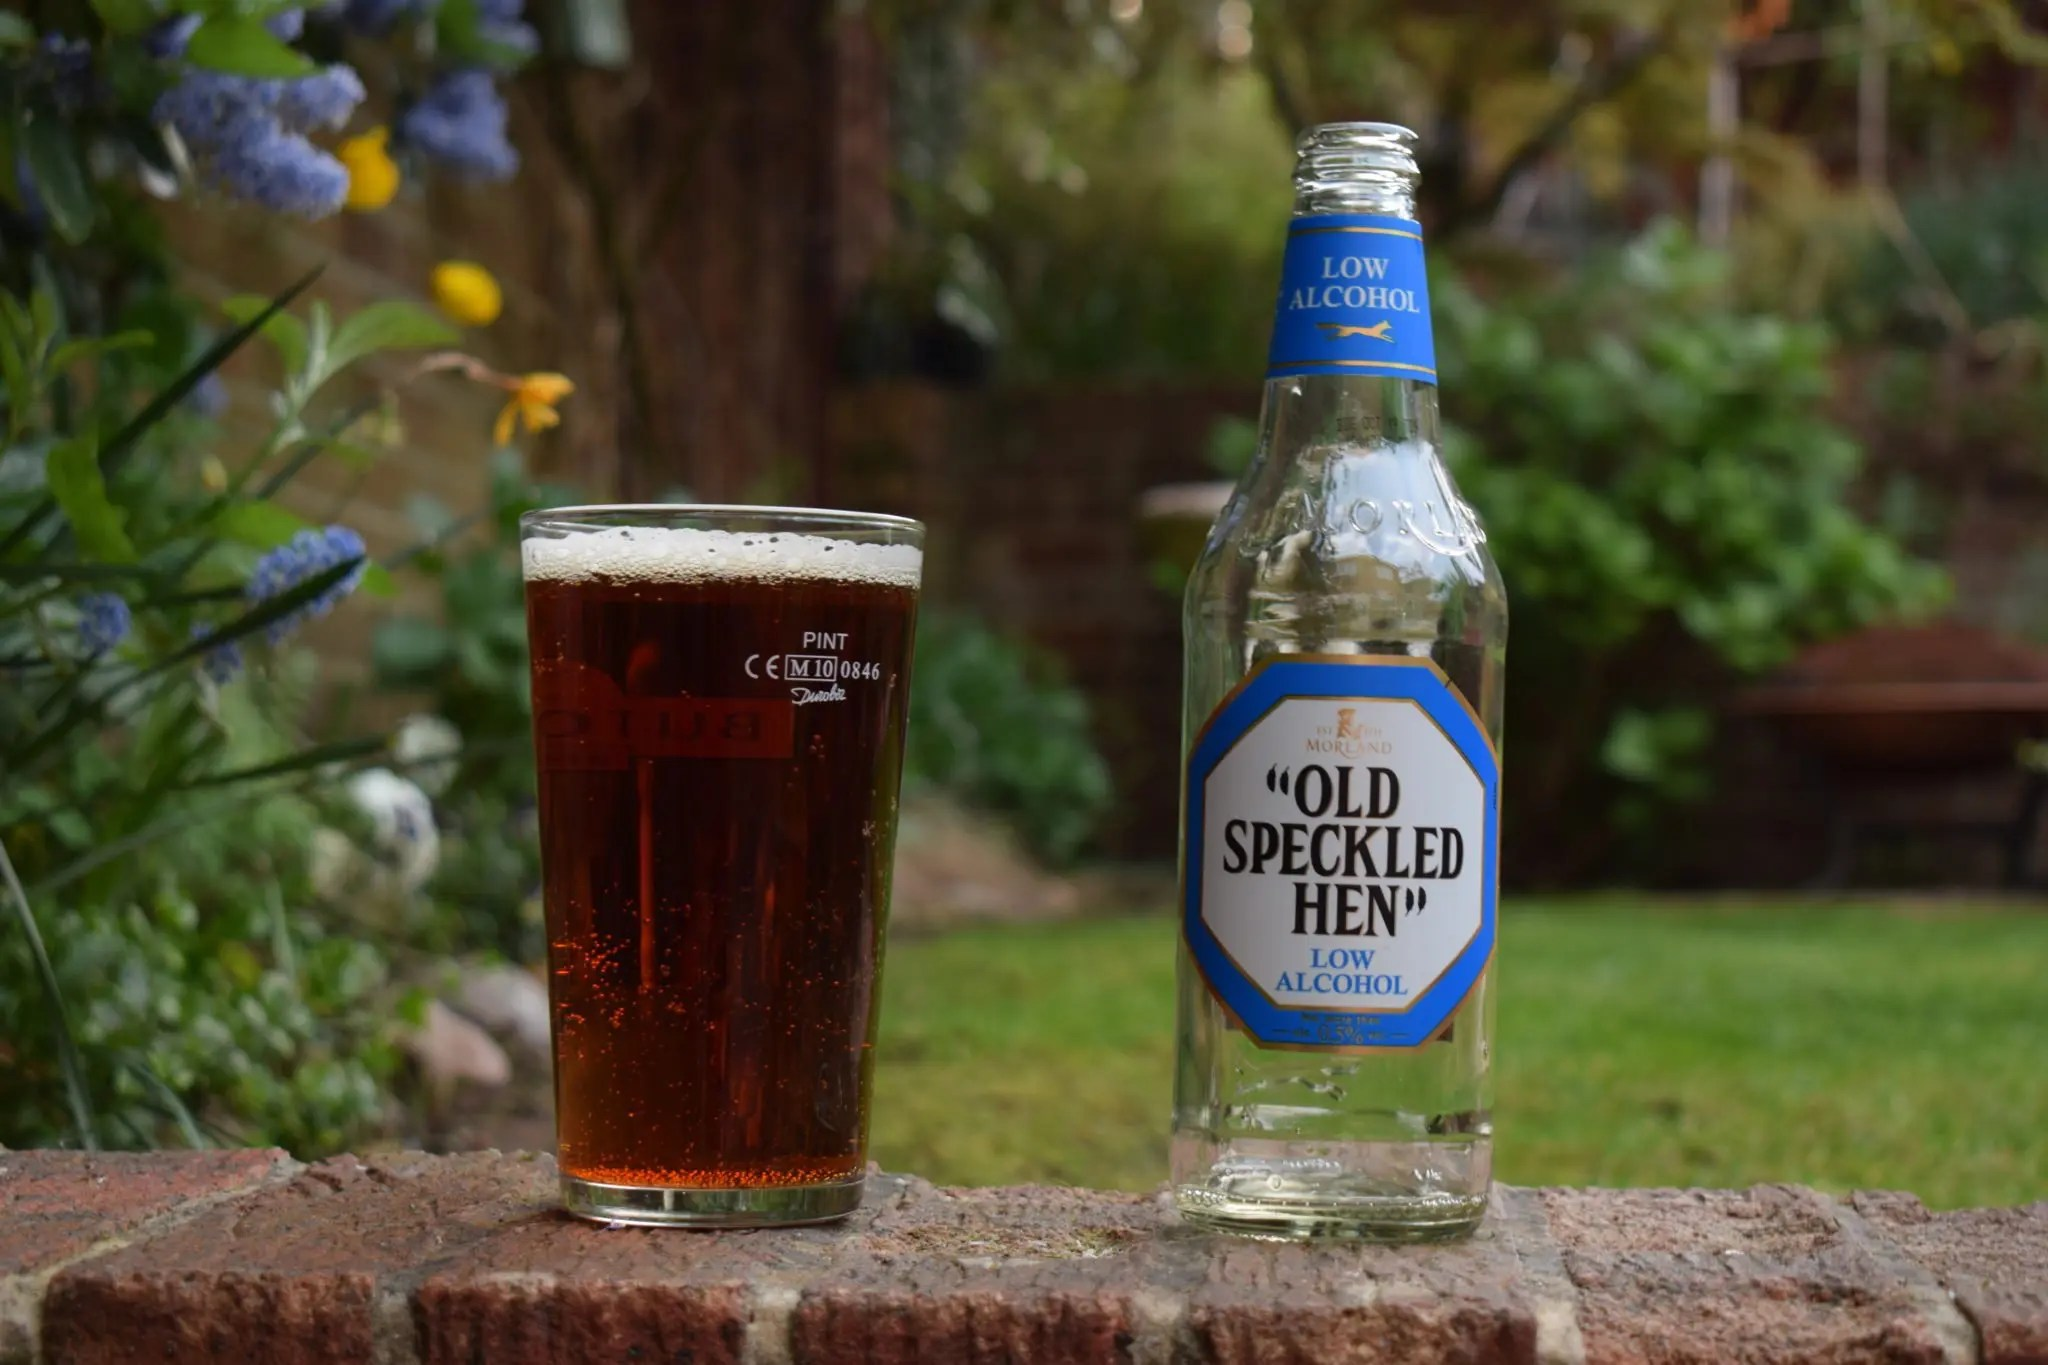 41058a23378 Old Speckled Hen Low Alcohol Review - Low-Alcohol (0.5%) Bitter